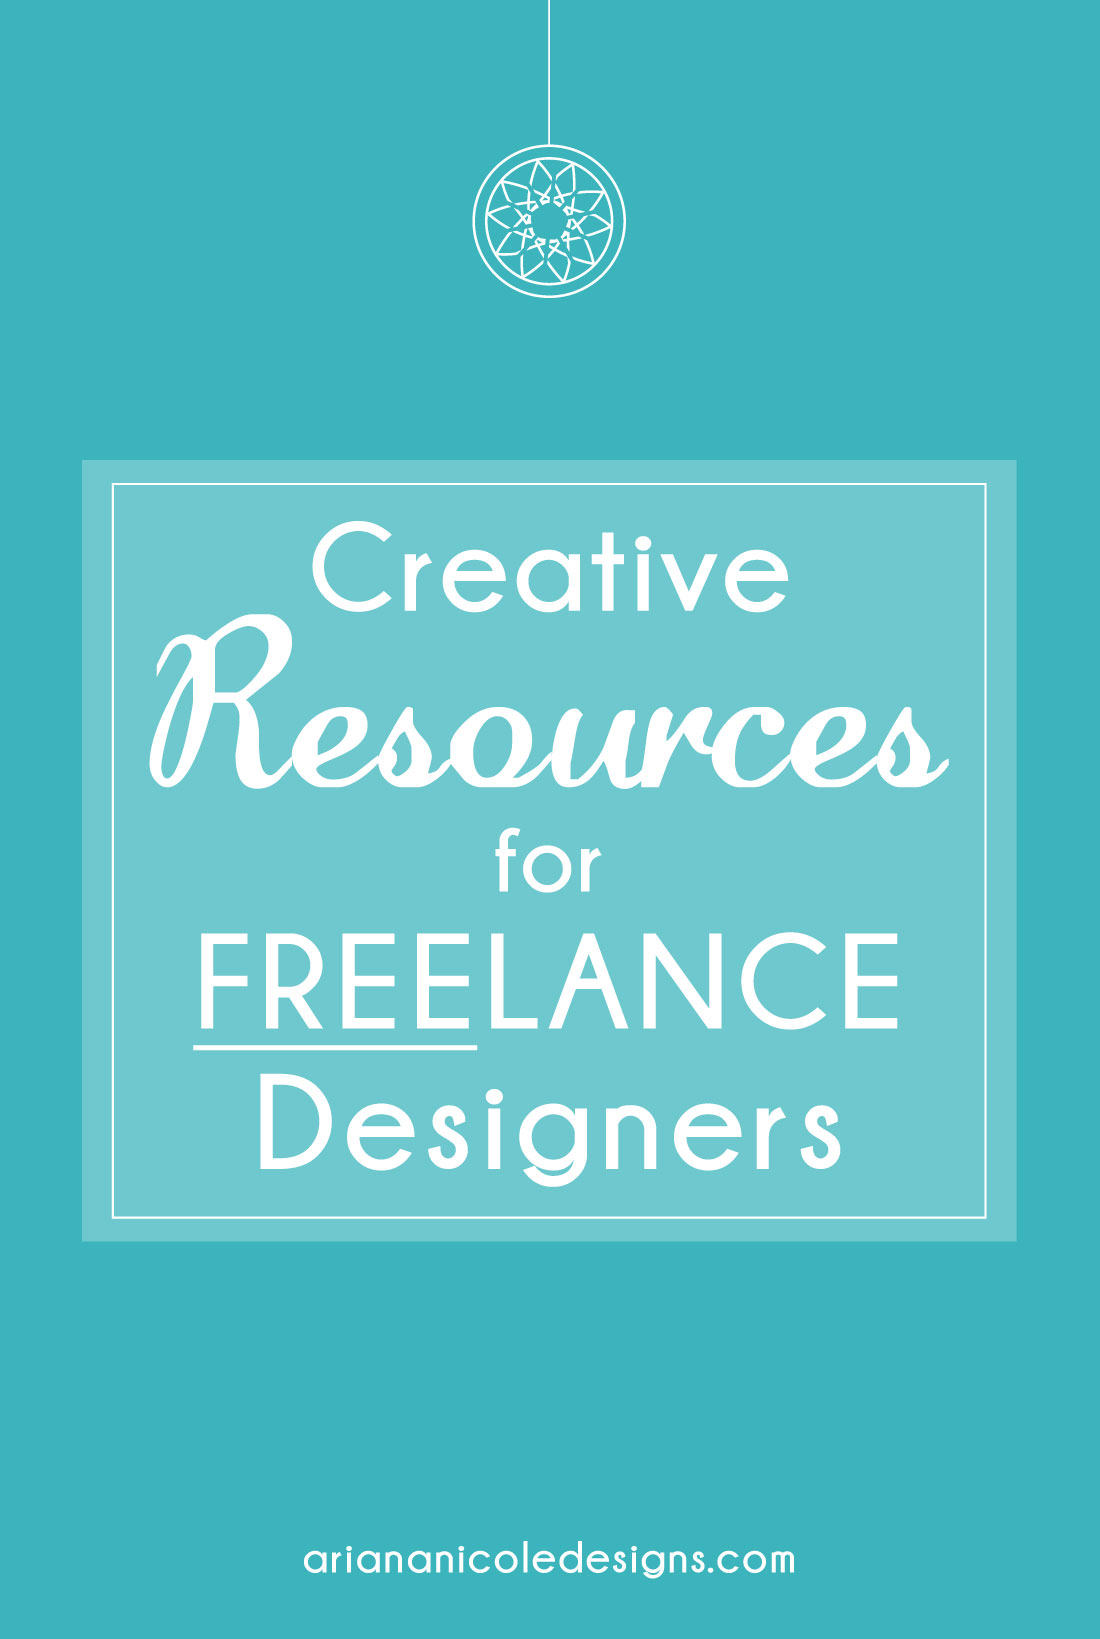 Creative_Resources_For_Freelance_Designers-1100